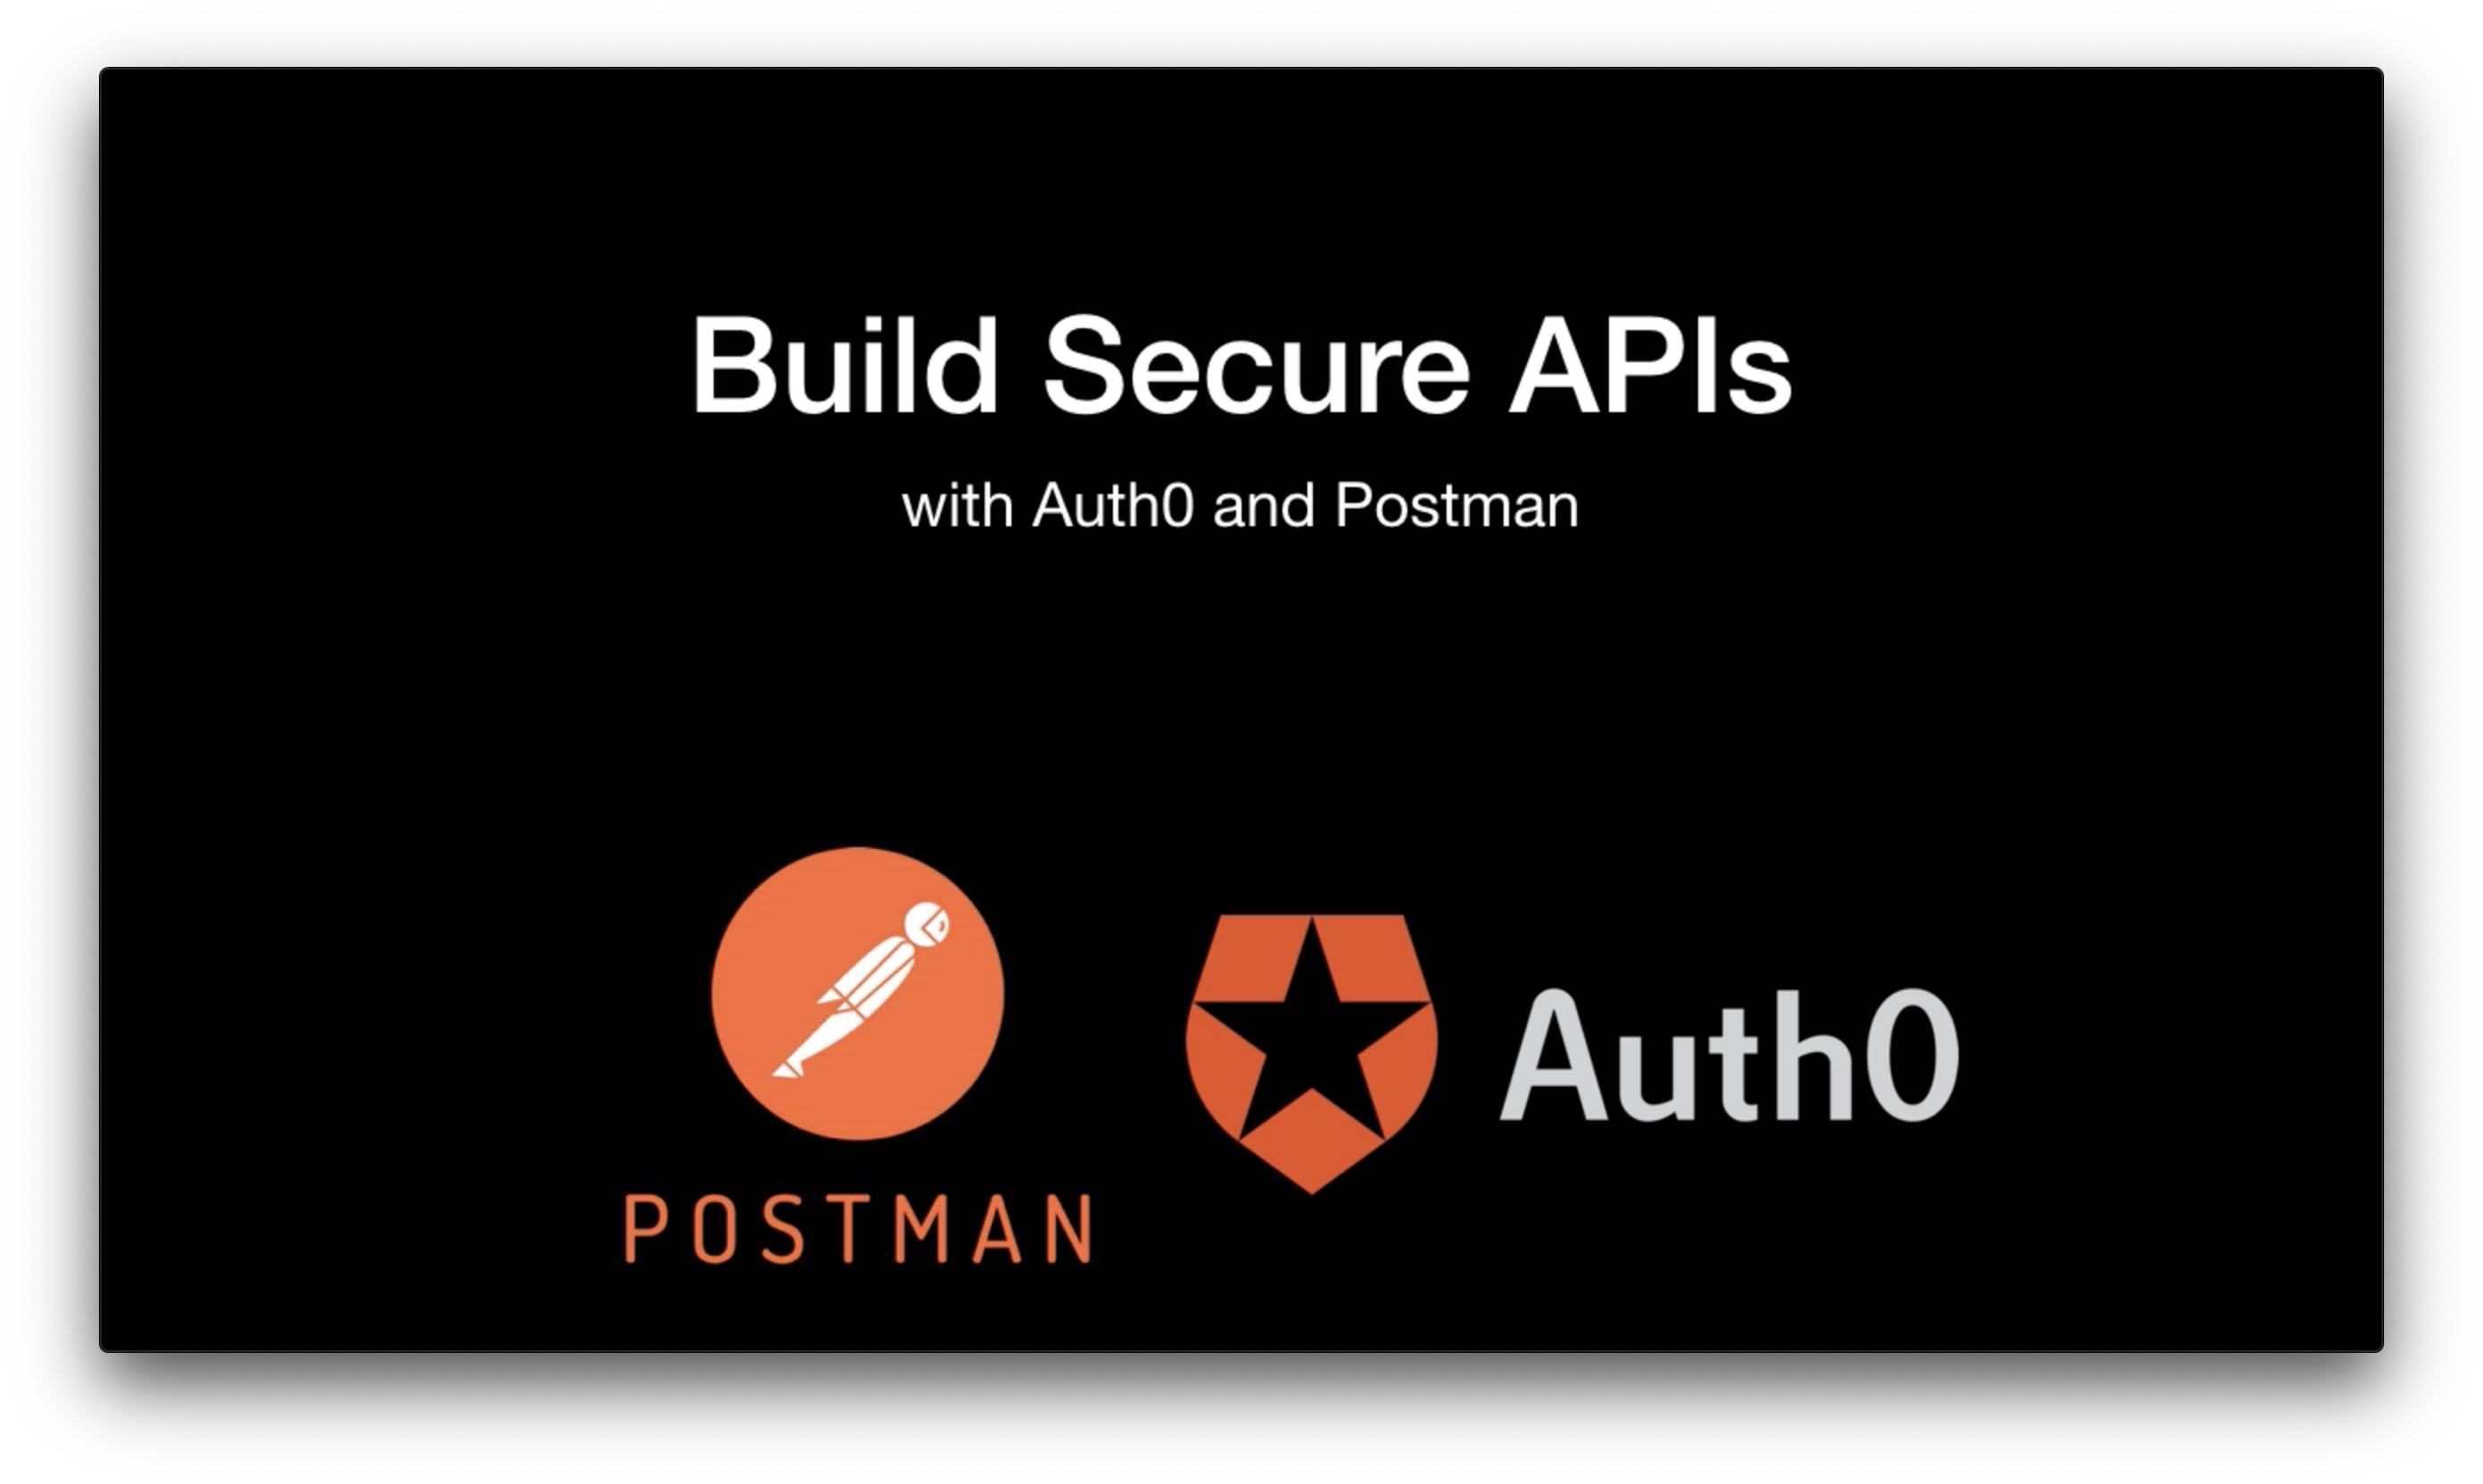 Build Secure APIs With Auth0 and Postman